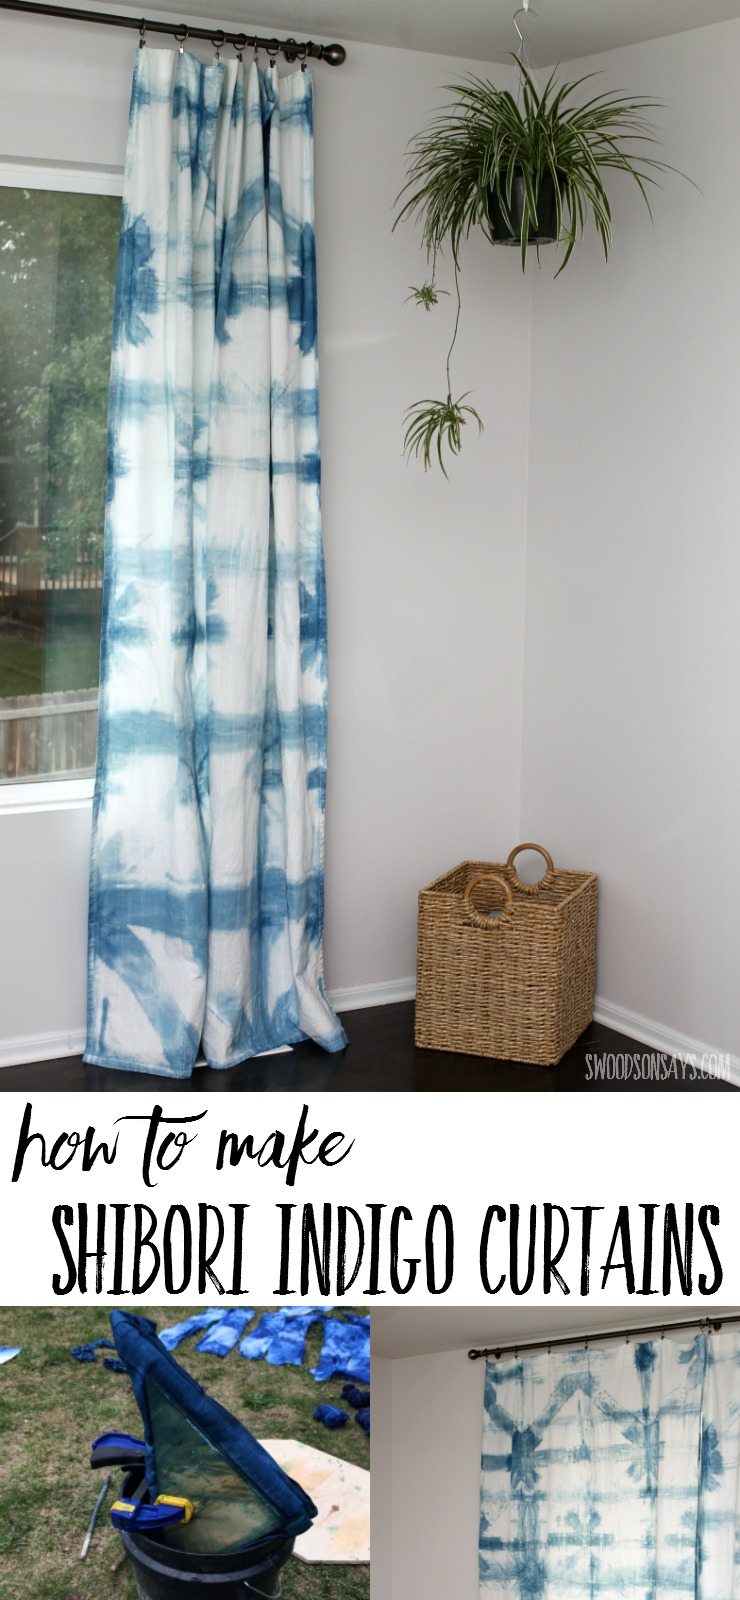 Make Curtains How To Make Indigo Dyed Curtains Swoodson Says